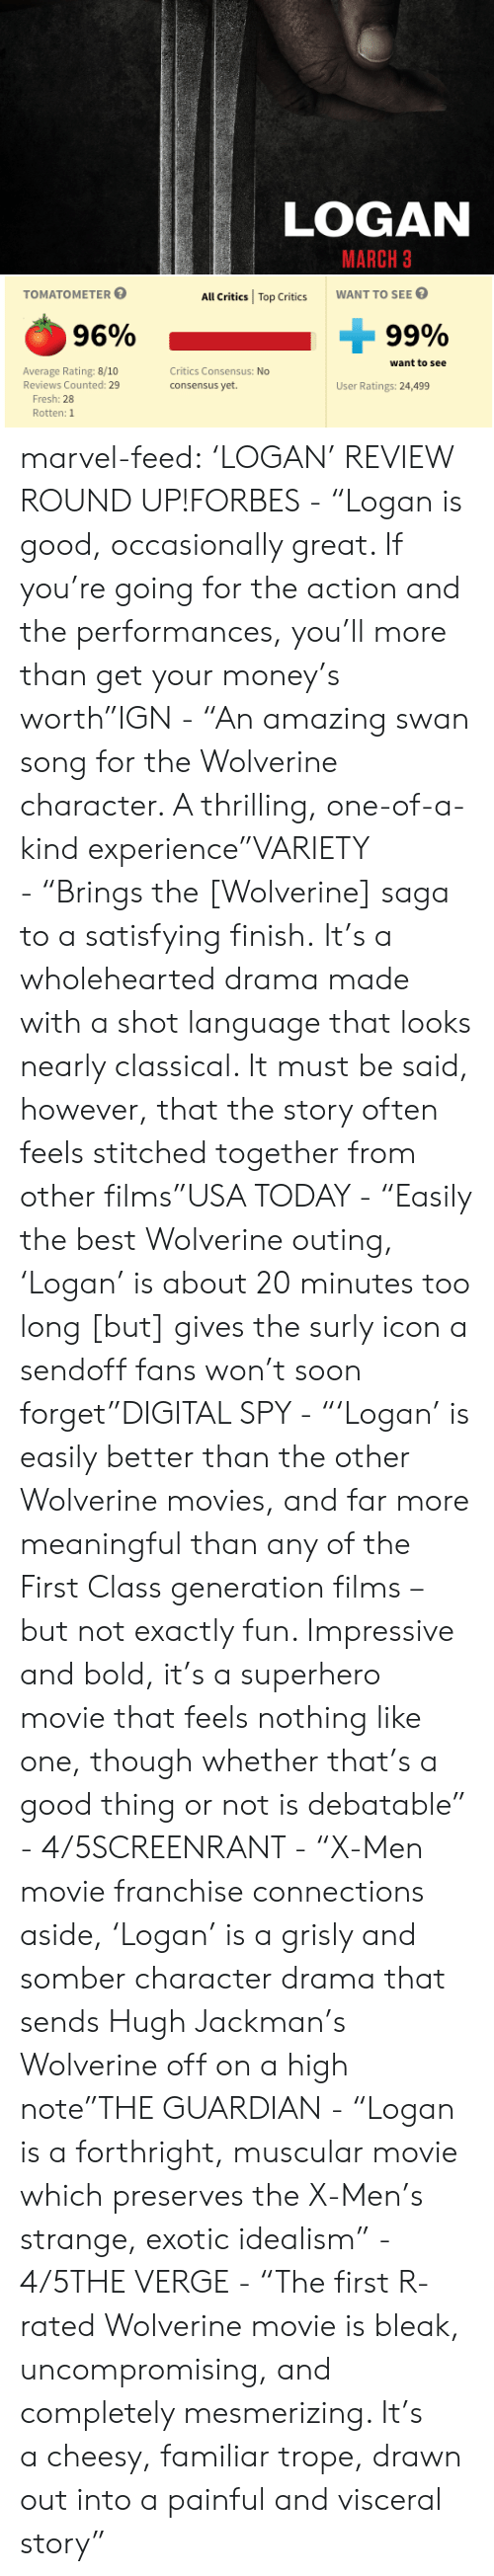 "debatable: LOGAN  MARCH 3   ТОMАТОMЕТER  WANT TO SEE  All Critics  Top Critics  99%  96%  want to see  Average Rating: 8/10  Reviews Counted: 29  Critics Consensus: No  consensus yet.  User Ratings: 24,499  Fresh: 28  Rotten: 1 marvel-feed:  'LOGAN' REVIEW ROUND UP!FORBES - ""Logan is good, occasionally great. If you're going for the action and the performances, you'll more than get your money's worth""IGN - ""An amazing swan song for the Wolverine character. A thrilling, one-of-a-kind experience""VARIETY - ""Brings the [Wolverine] saga to a satisfying finish. It's a wholehearted drama made with a shot language that looks nearly classical. It must be said, however, that the story often feels stitched together from other films""USA TODAY - ""Easily the best Wolverine outing, 'Logan' is about 20 minutes too long [but] gives the surly icon a sendoff fans won't soon forget""DIGITAL SPY - ""'Logan' is easily better than the other Wolverine movies, and far more meaningful than any of the First Class generation films – but not exactly fun. Impressive and bold, it's a superhero movie that feels nothing like one, though whether that's a good thing or not is debatable"" - 4/5SCREENRANT - ""X-Men movie franchise connections aside, 'Logan' is a grisly and somber character drama that sends Hugh Jackman's Wolverine off on a high note""THE GUARDIAN - ""Logan is a forthright, muscular movie which preserves the X-Men's strange, exotic idealism"" - 4/5THE VERGE - ""The first R-rated Wolverine movie is bleak, uncompromising, and completely mesmerizing. It's a cheesy, familiar trope, drawn out into a painful and visceral story"""